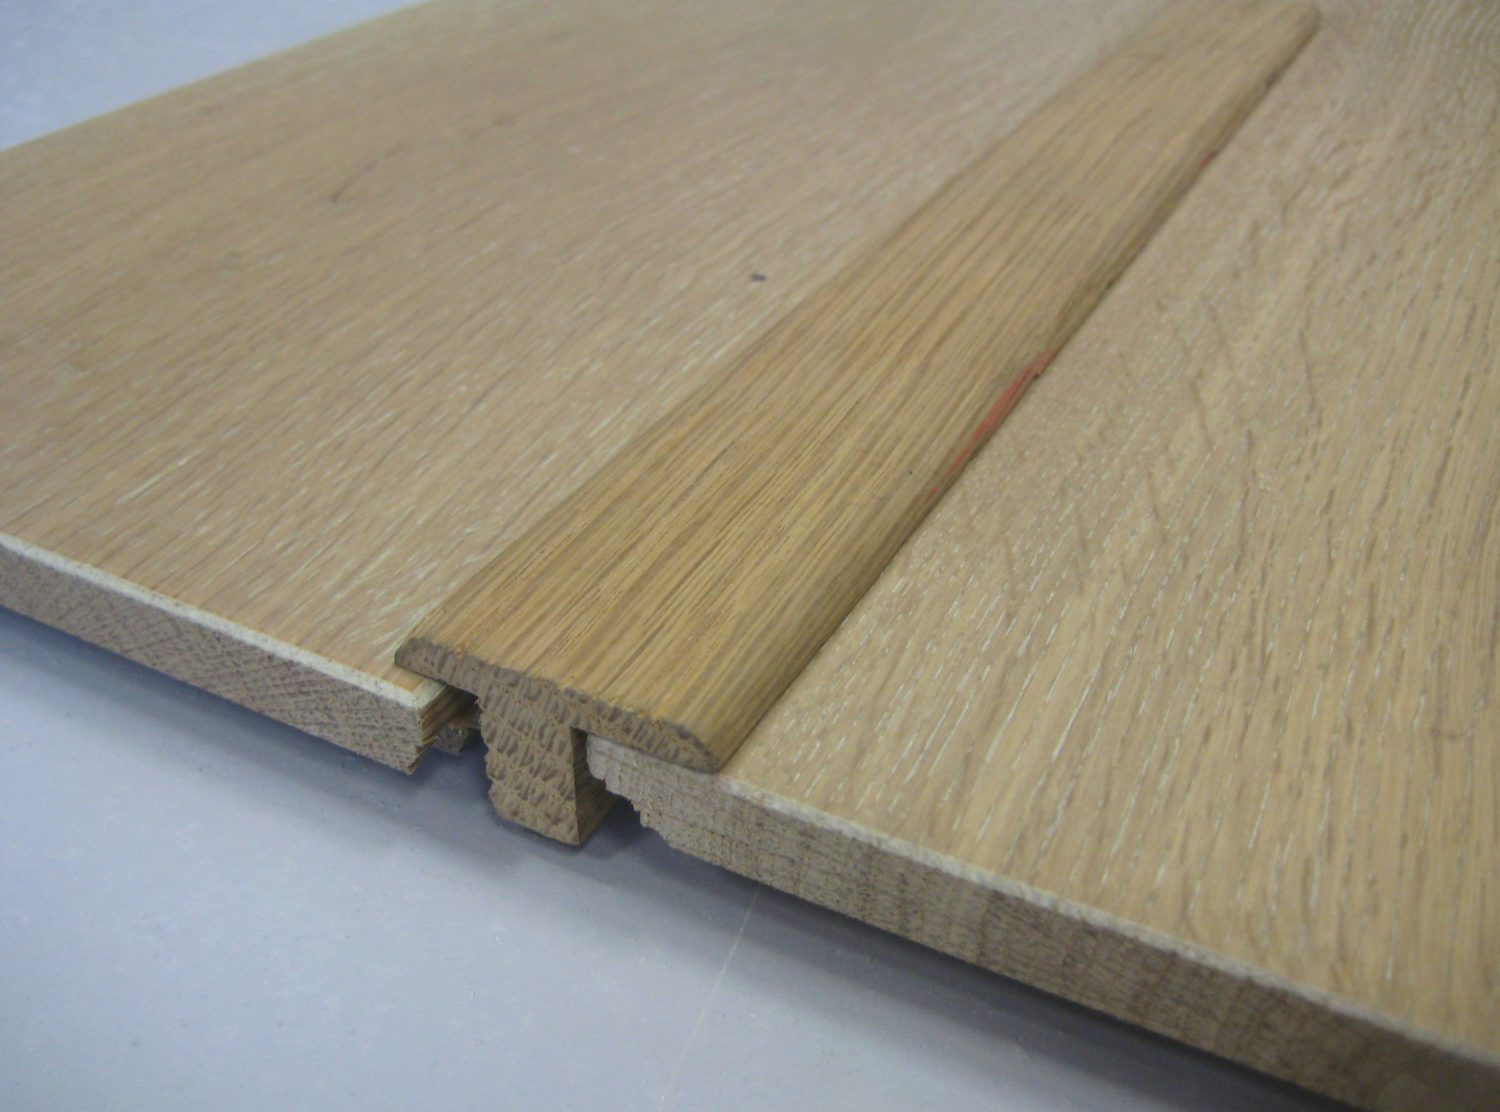 Barre de jonction chene 21 x 35 mm parquets de 18 mm d for Barre de jonction parquet